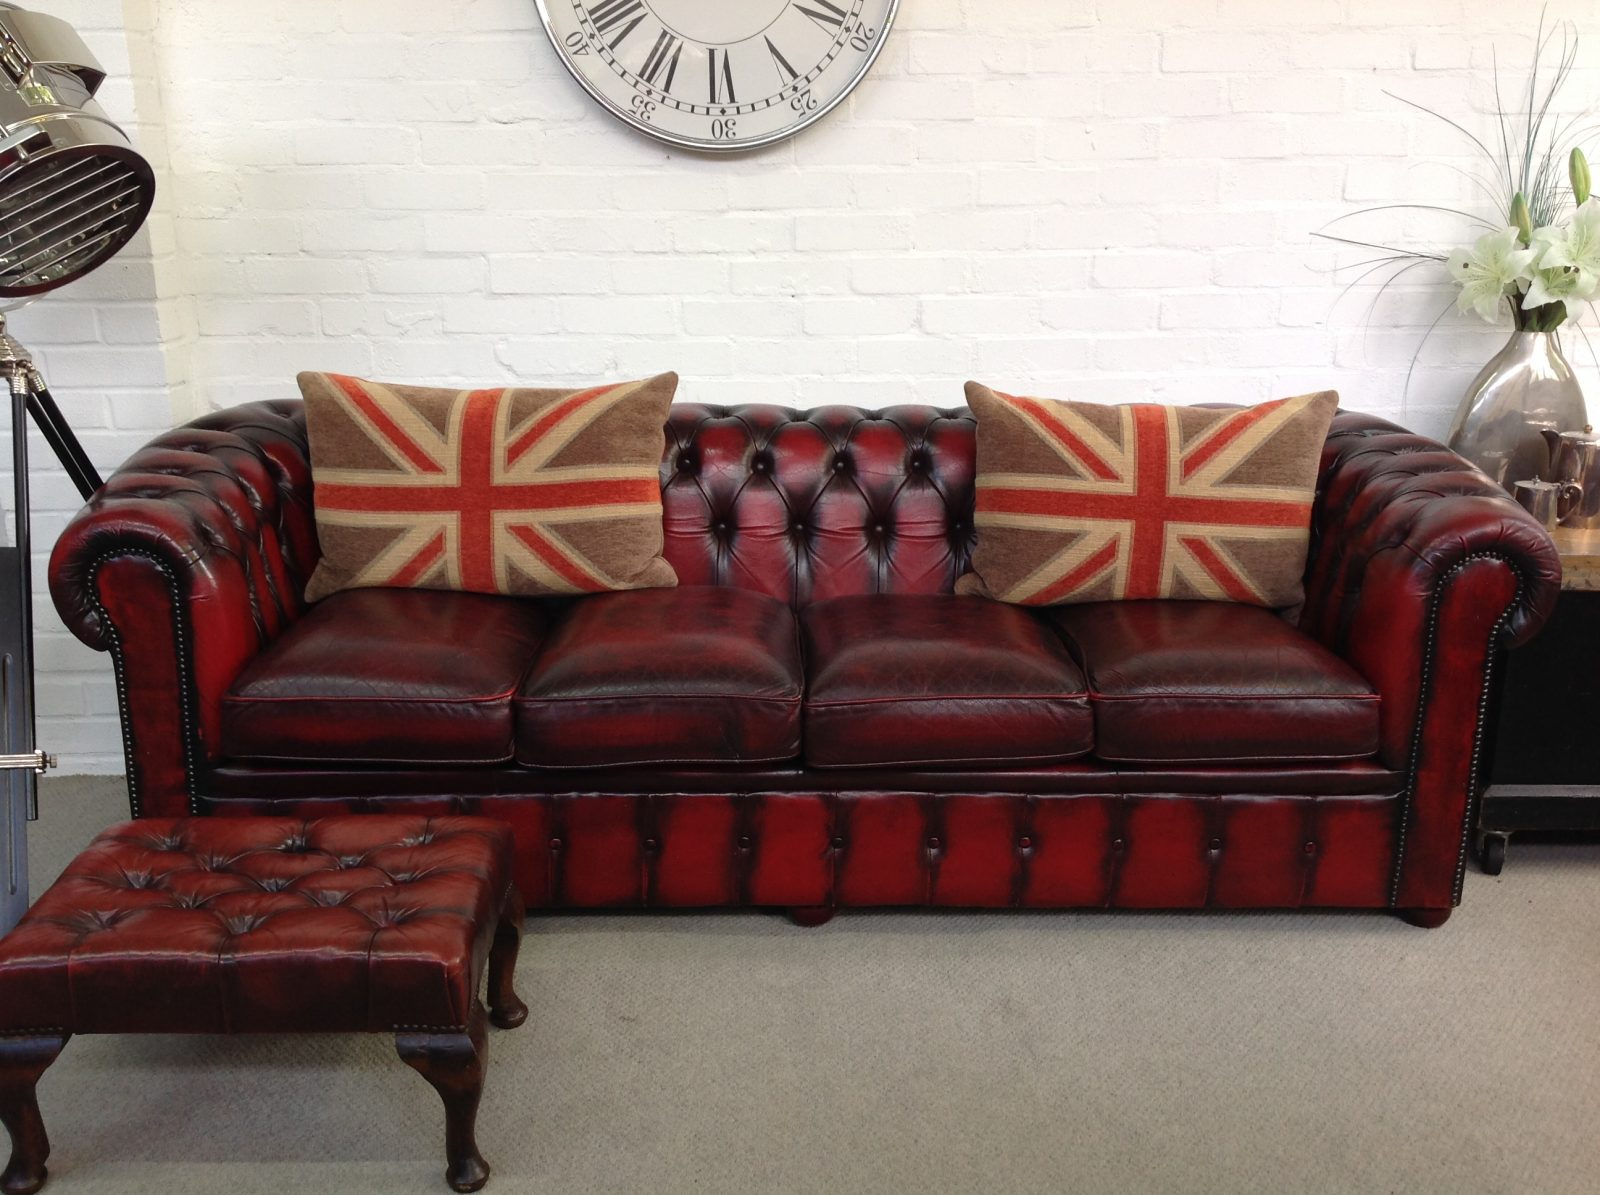 Oxblood 4 Seater Chesterfield Sofa.